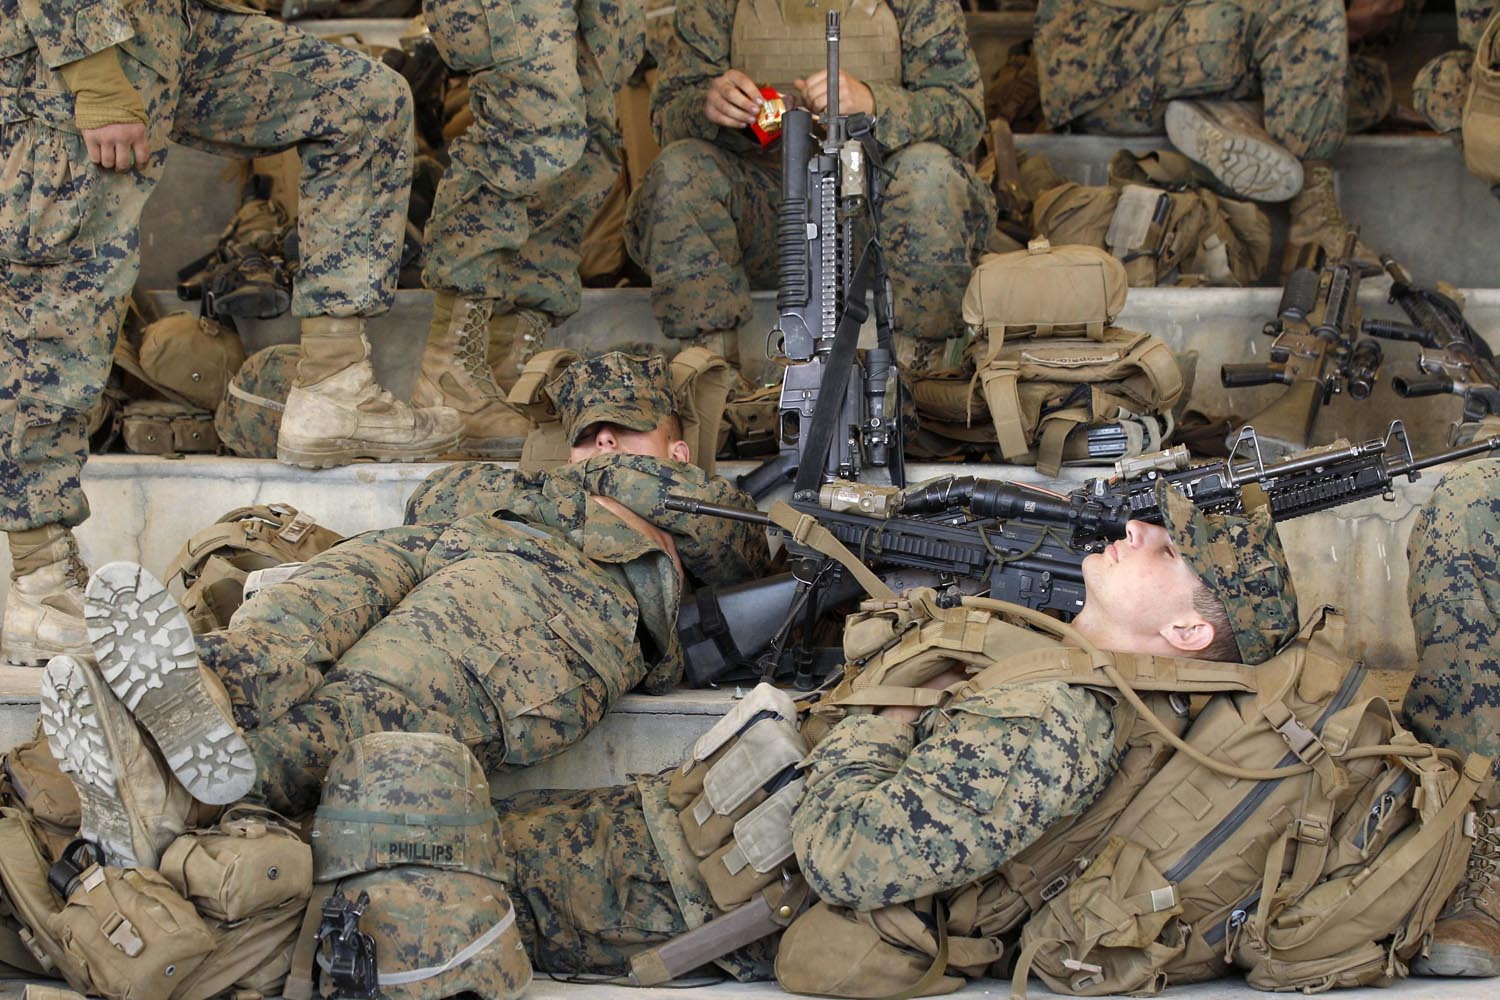 April 22, 2013. U.S. Marines take a rest during the Combined Joint Logistics Over the Shore exercise as part of the two-month-long Foal Eagle series of U.S.-South Korea joint and combined field training exercises on Pohang beach, southeast of Seoul, South Korea.